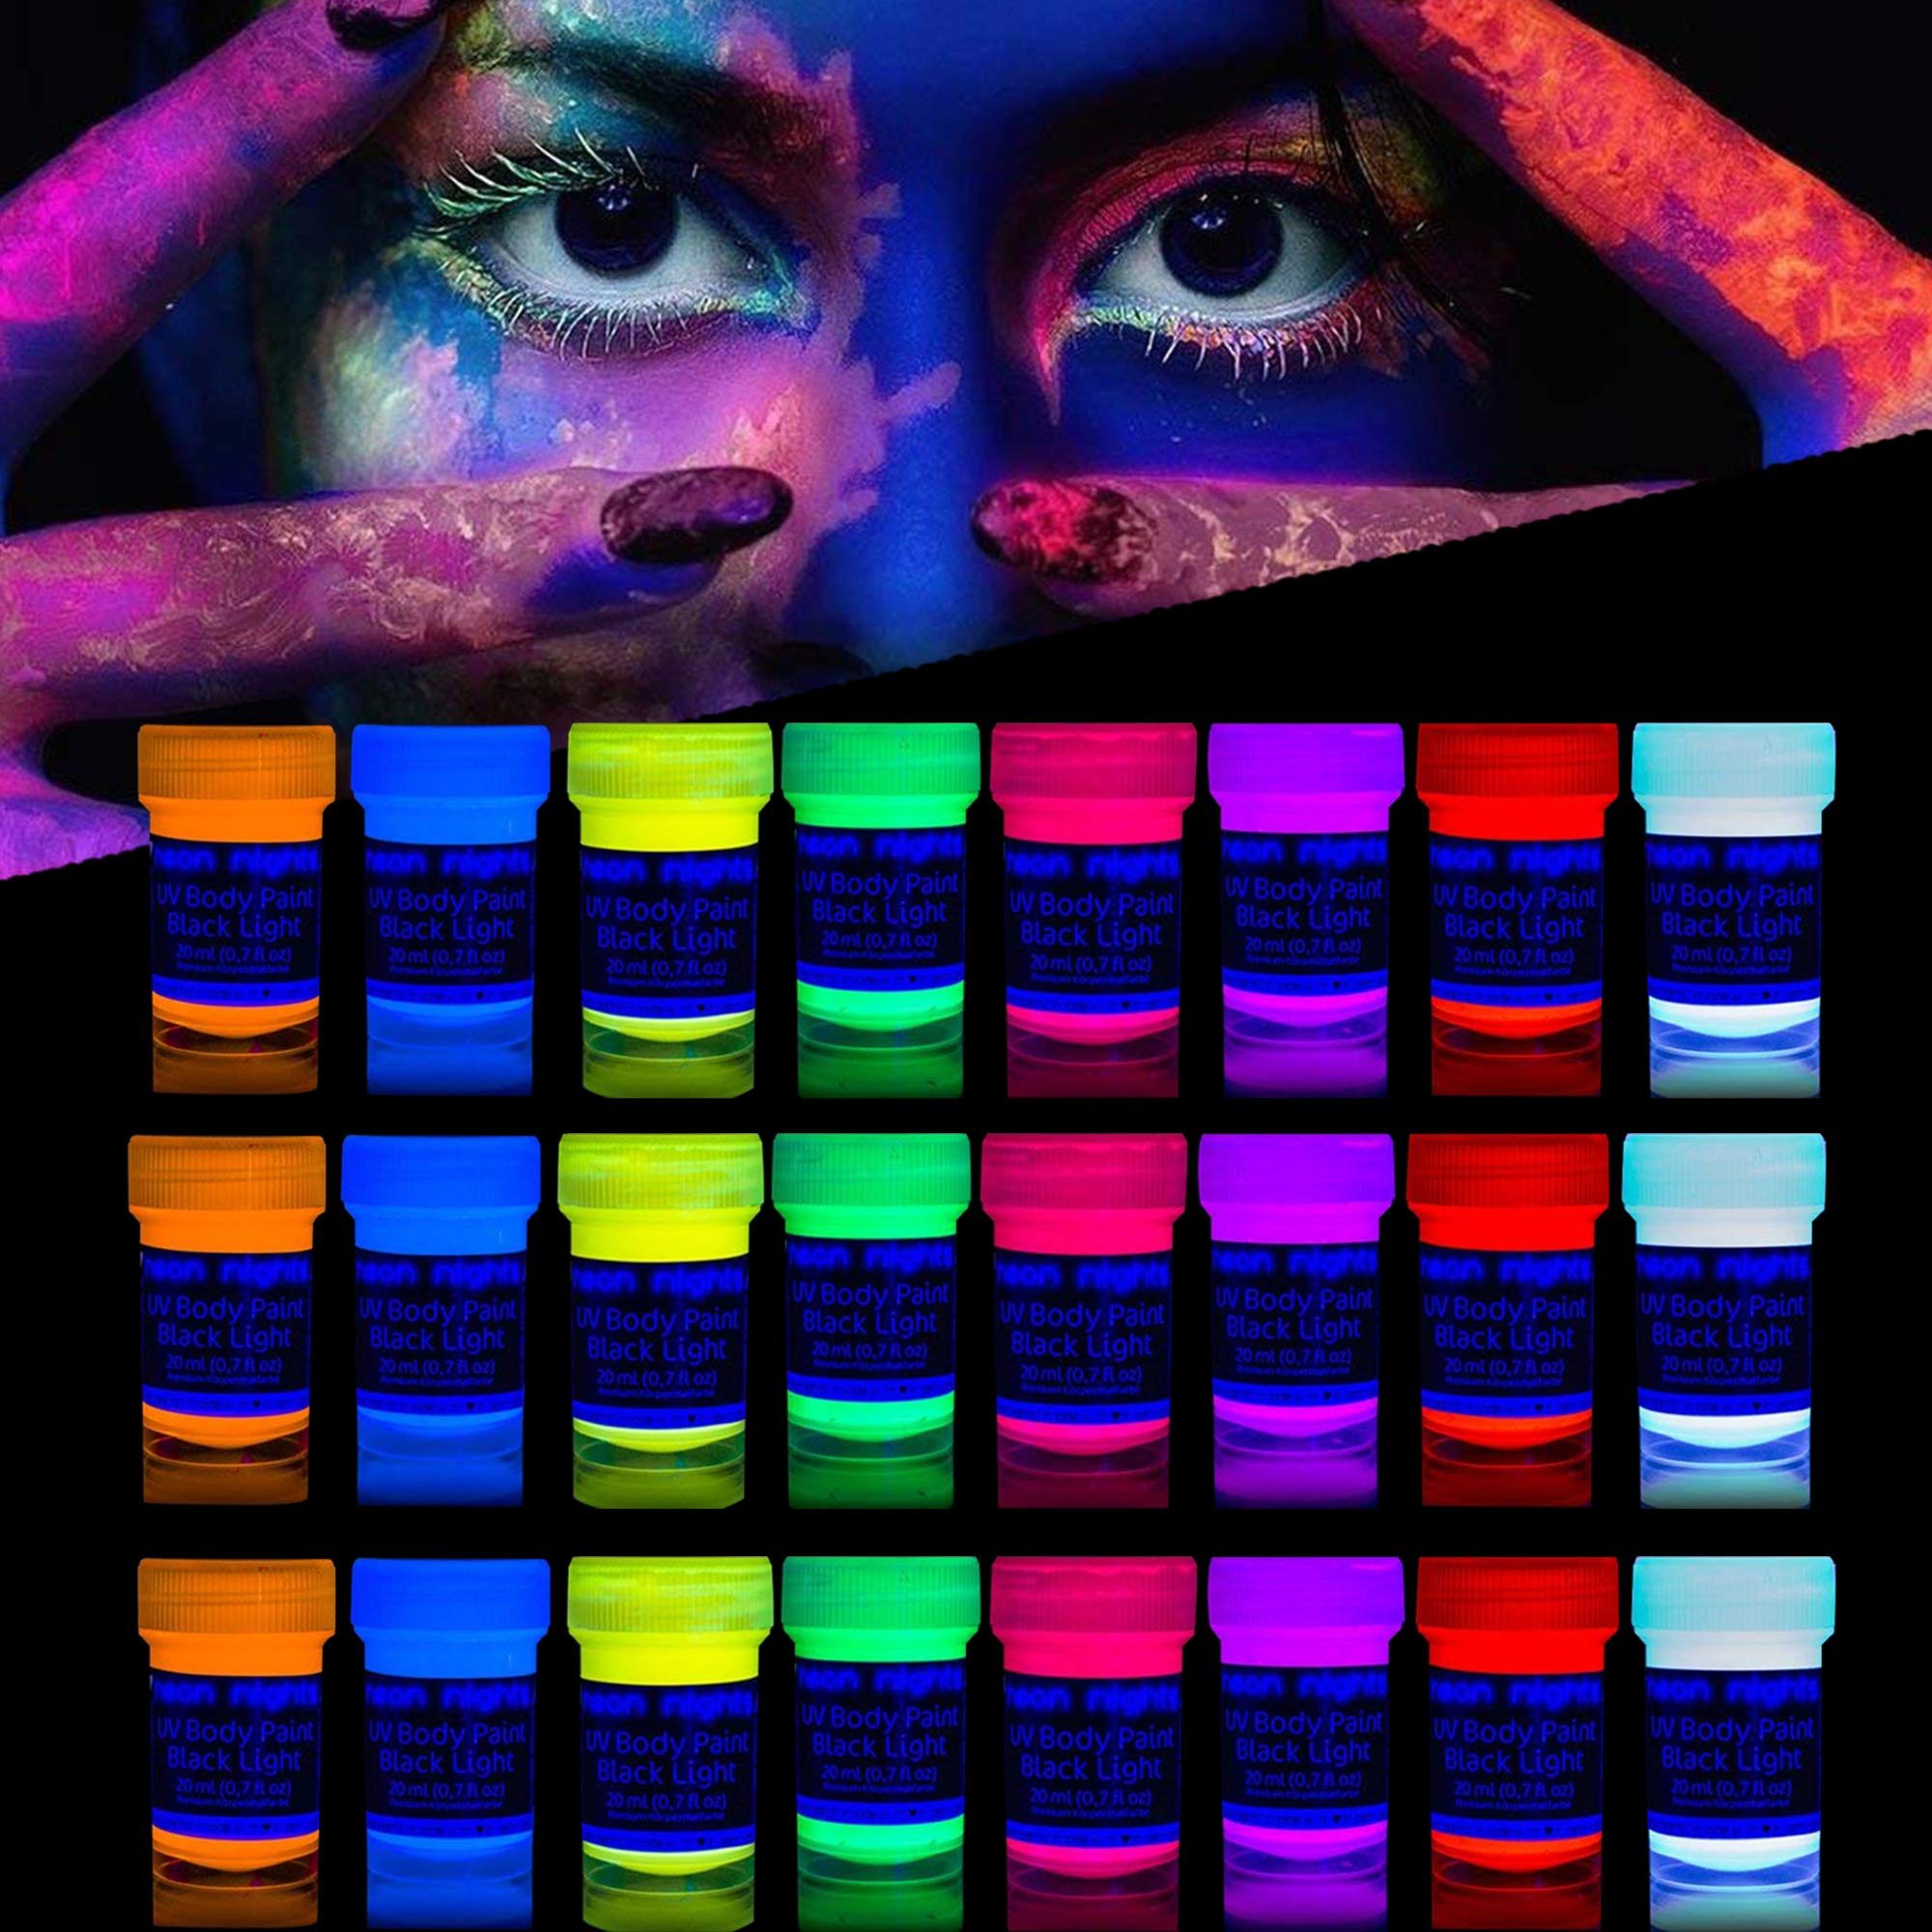 'XXL Set' 24 Cans of Neon Body Paints by neon nights - 16.5 fl oz of Luminescent Body Paints - Long-Lasting Neon Body Paints for Blacklights, UV Lights - Fluorescent Body Paints for Adults by neon nights (Image #1)